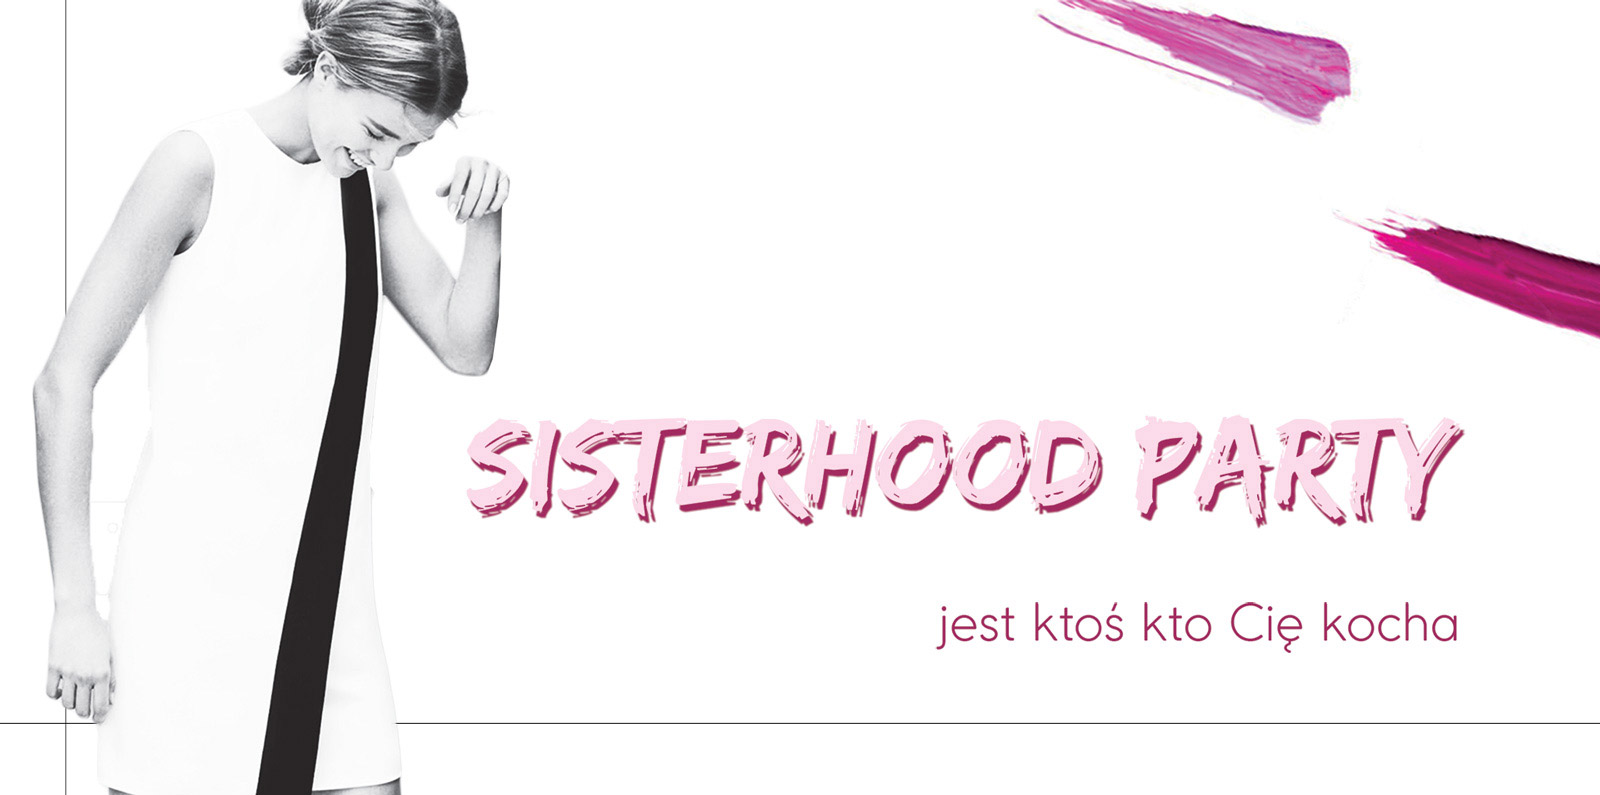 Sisterhood Party